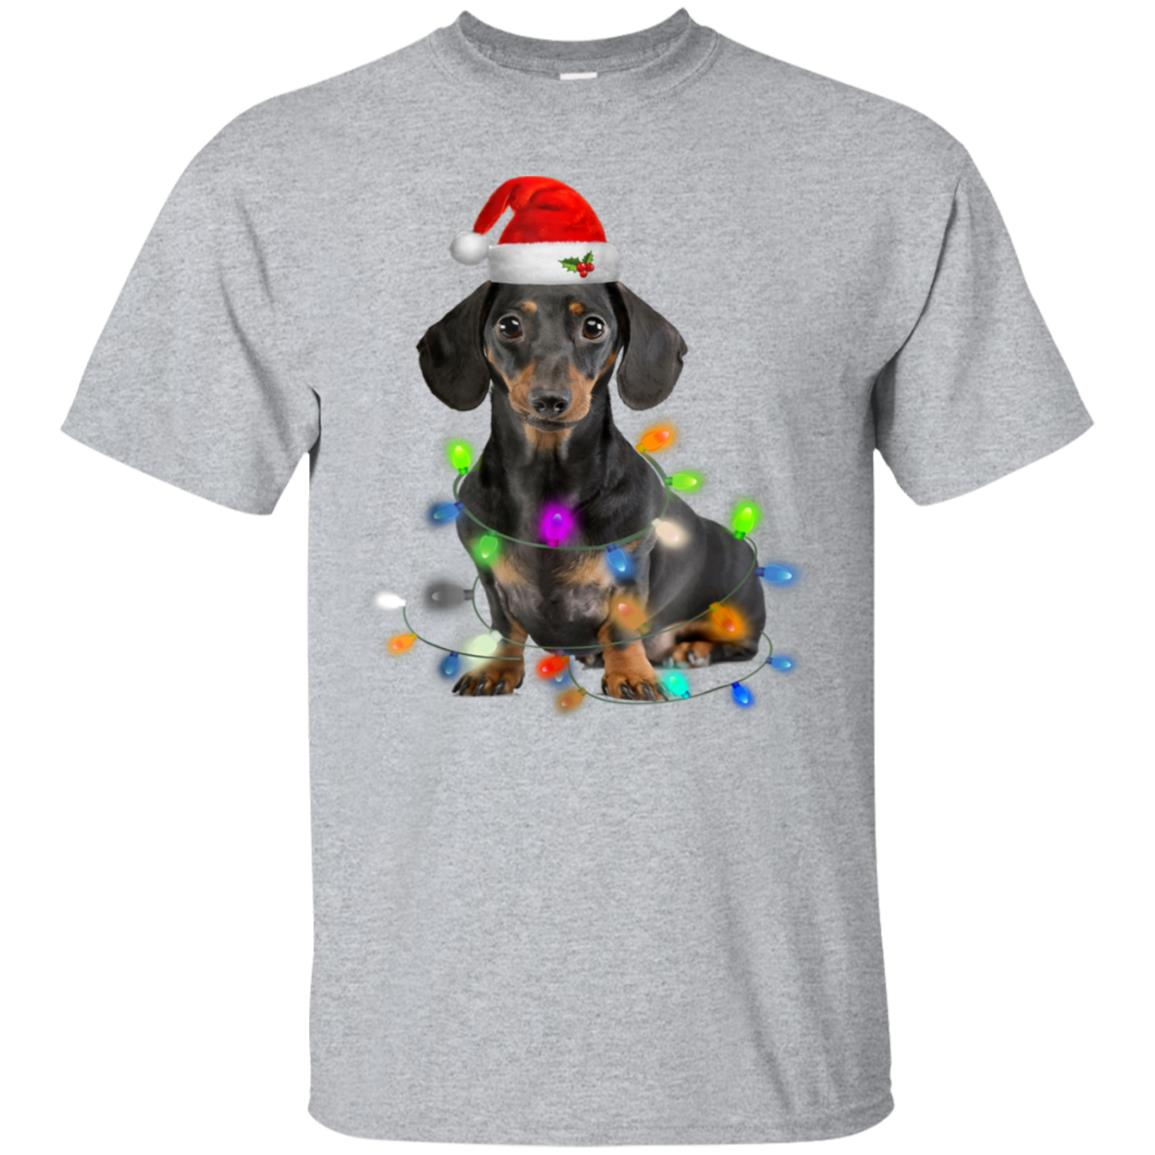 Dachshund Christmas T-Shirt Gifts Cute Dog Lovers 99promocode